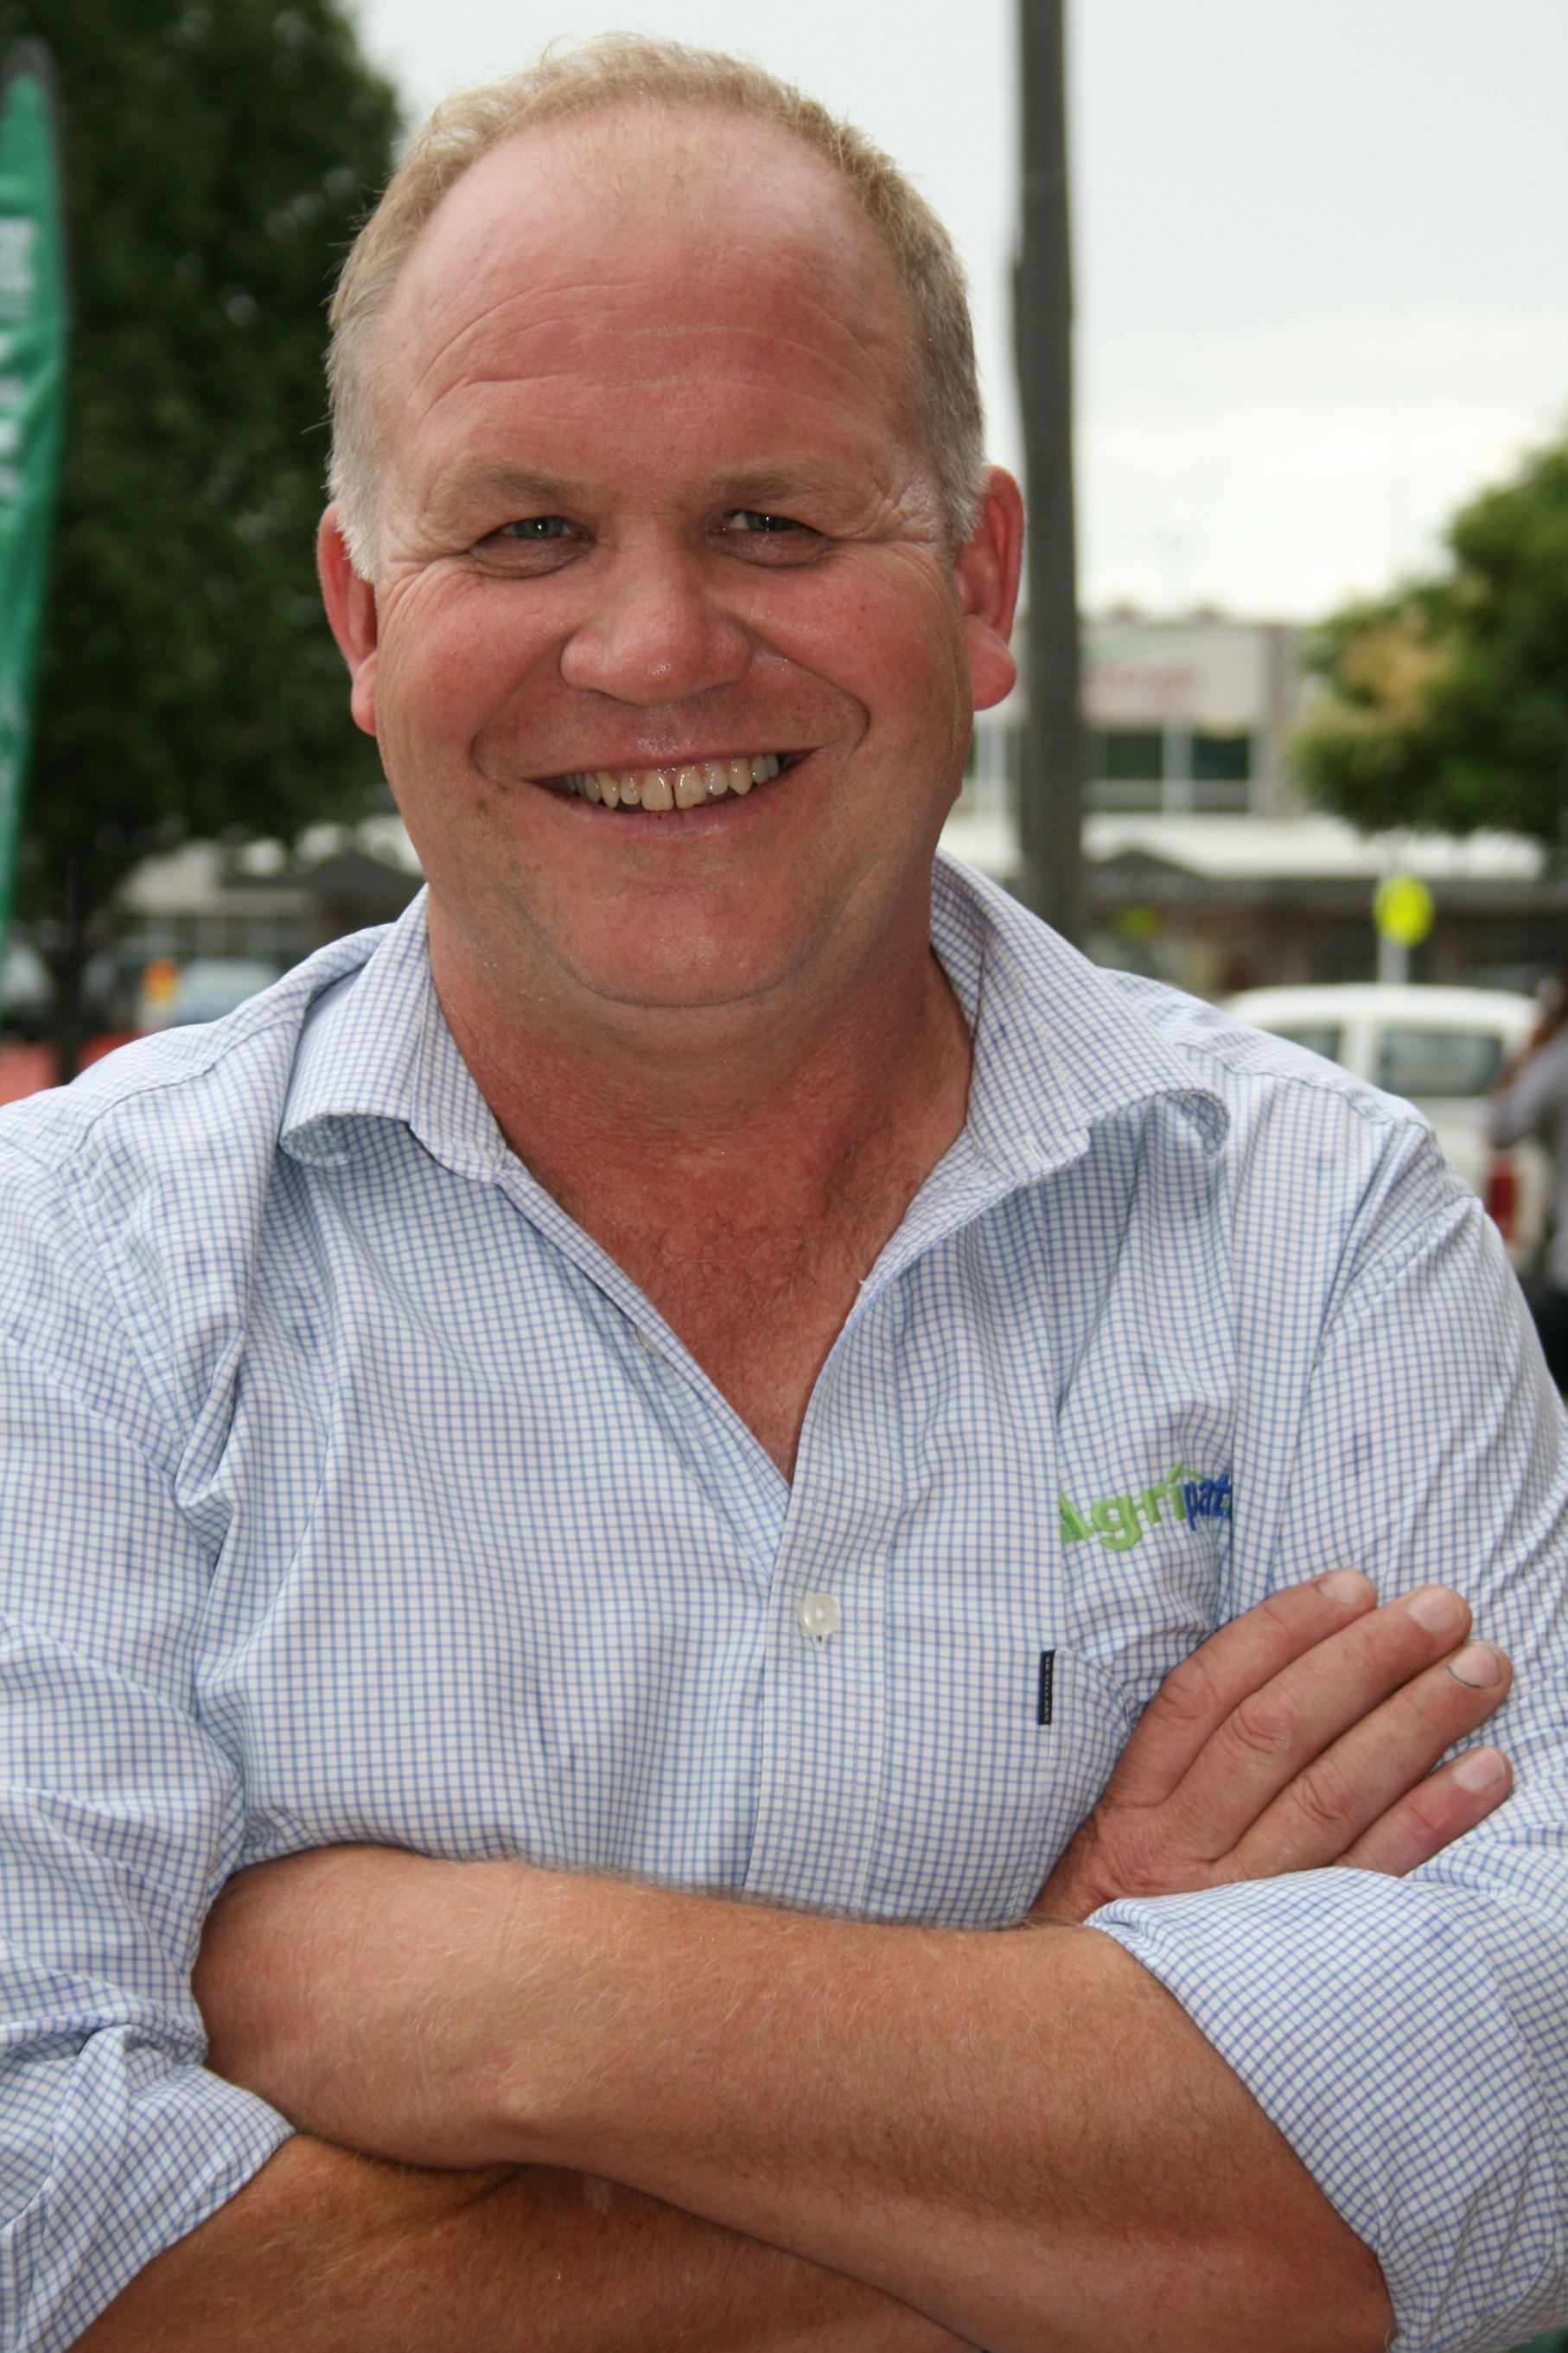 Image of Simon Fritsch, Agripath director